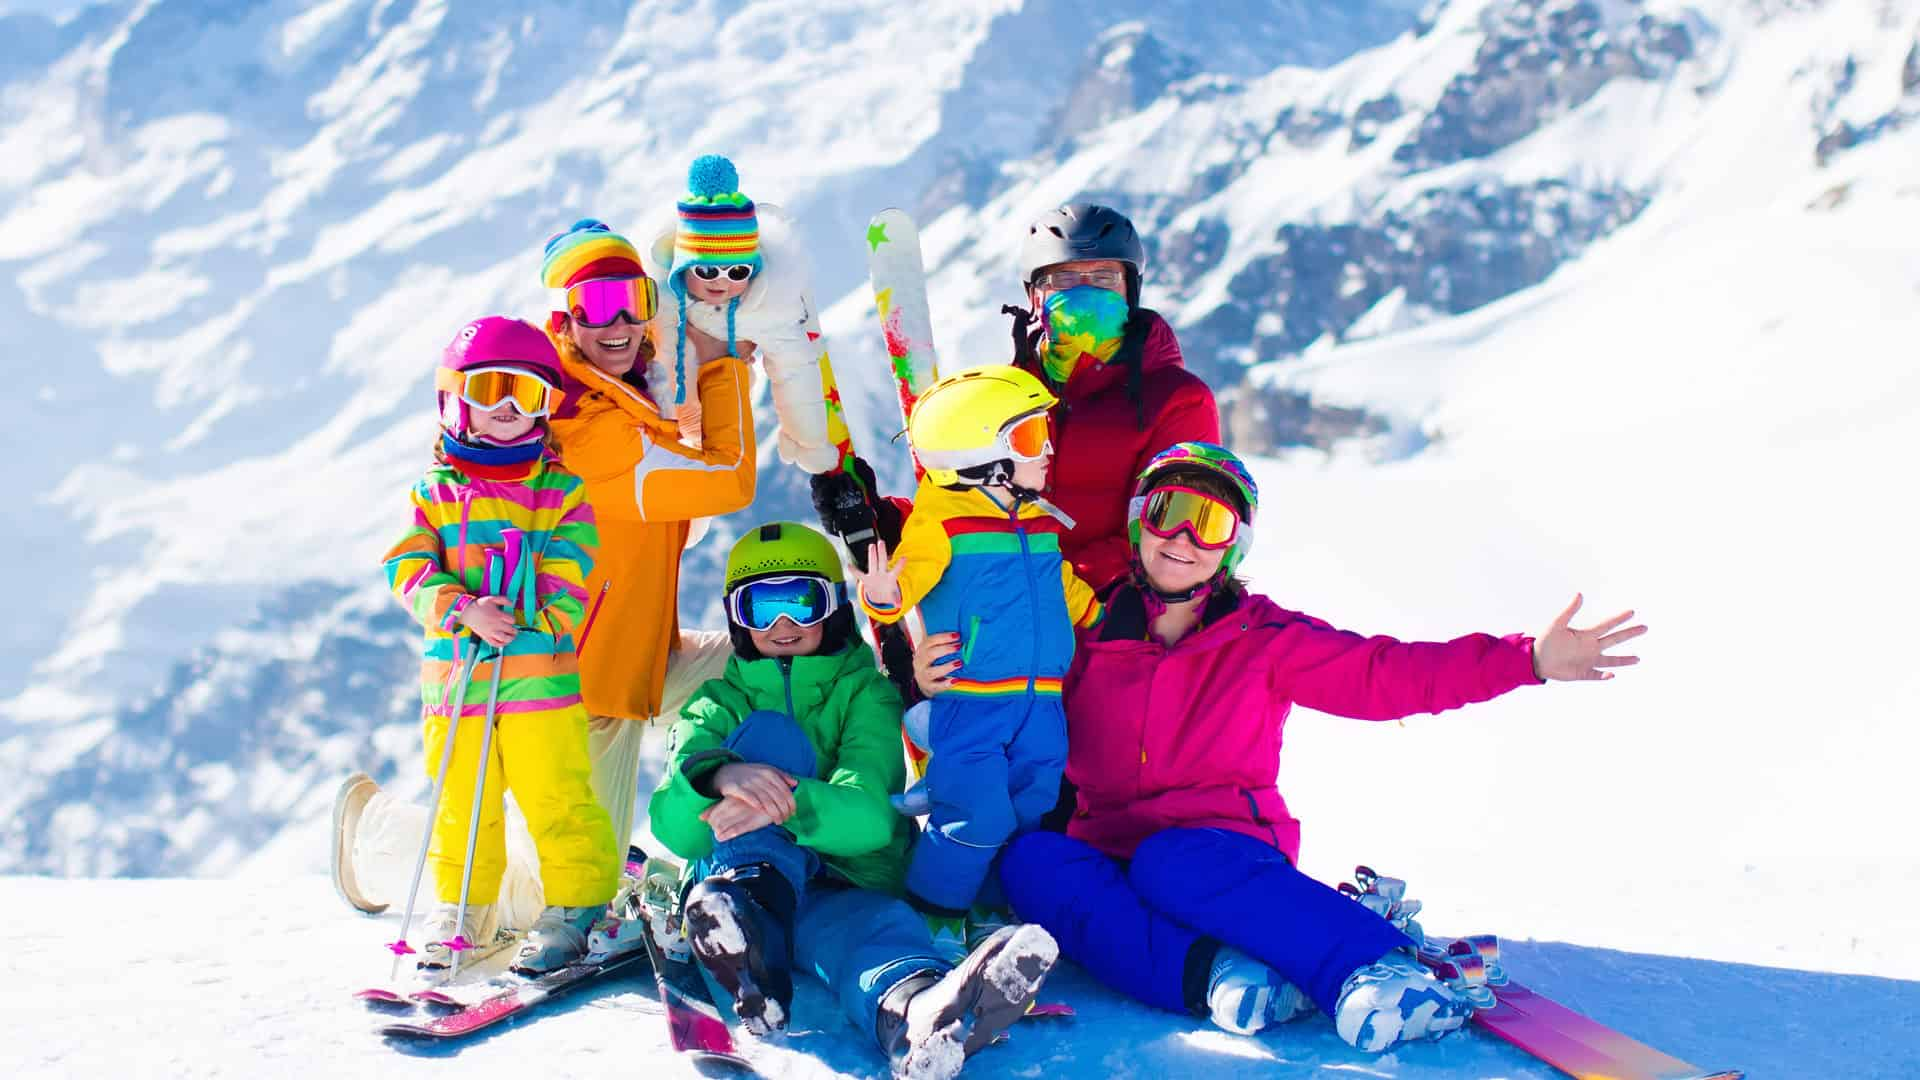 Family skiing in the Swiss Alps in Europe with mountains in the background